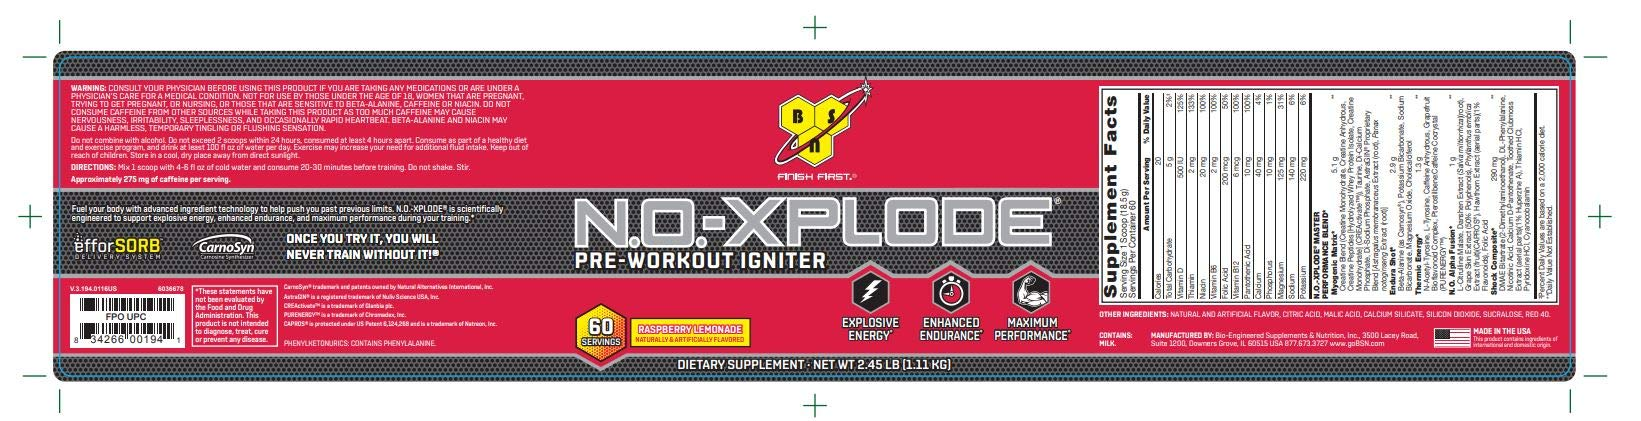 BSN N.O.-XPLODE Pre-Workout Supplement with Creatine, Beta-Alanine, and Energy, Flavor: Raspberry Lemonade, 60 Servings. Explosive Energy Pre-Workout Igniter by B S N No xplode